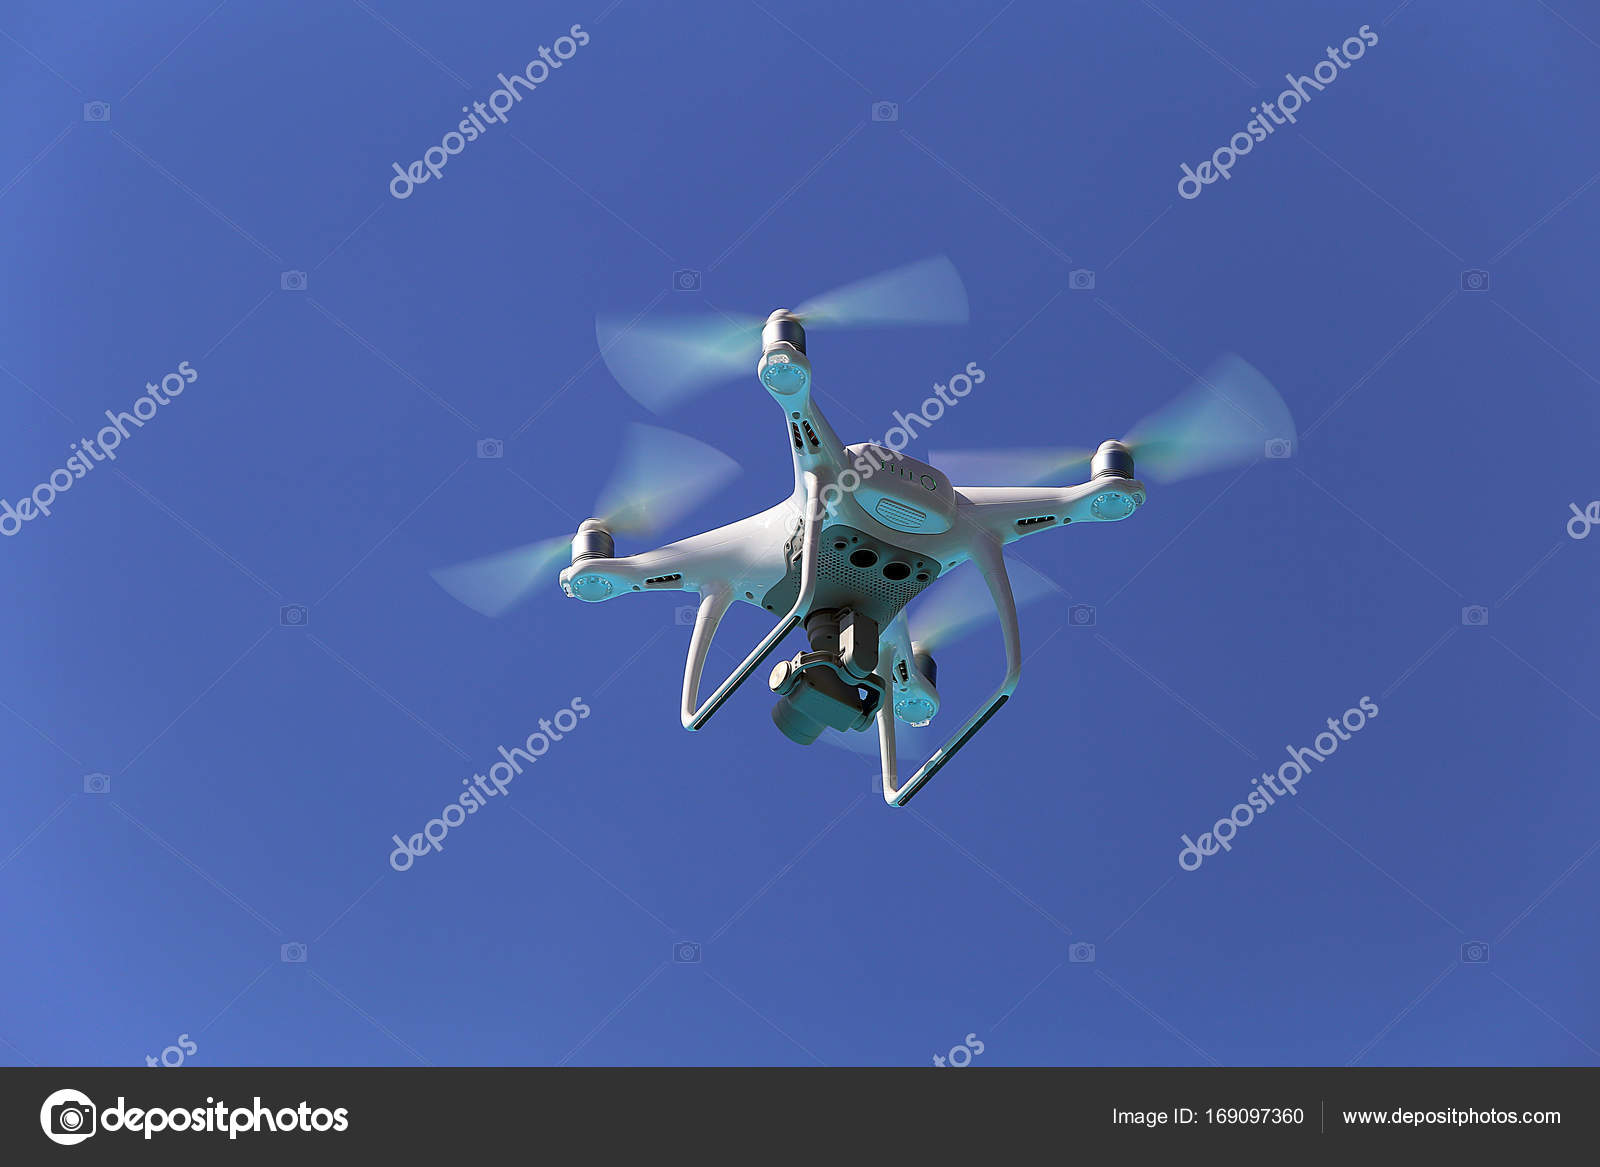 Dji Phantom 5 Drone Fly On A Blue Sky Photo By Msmadu